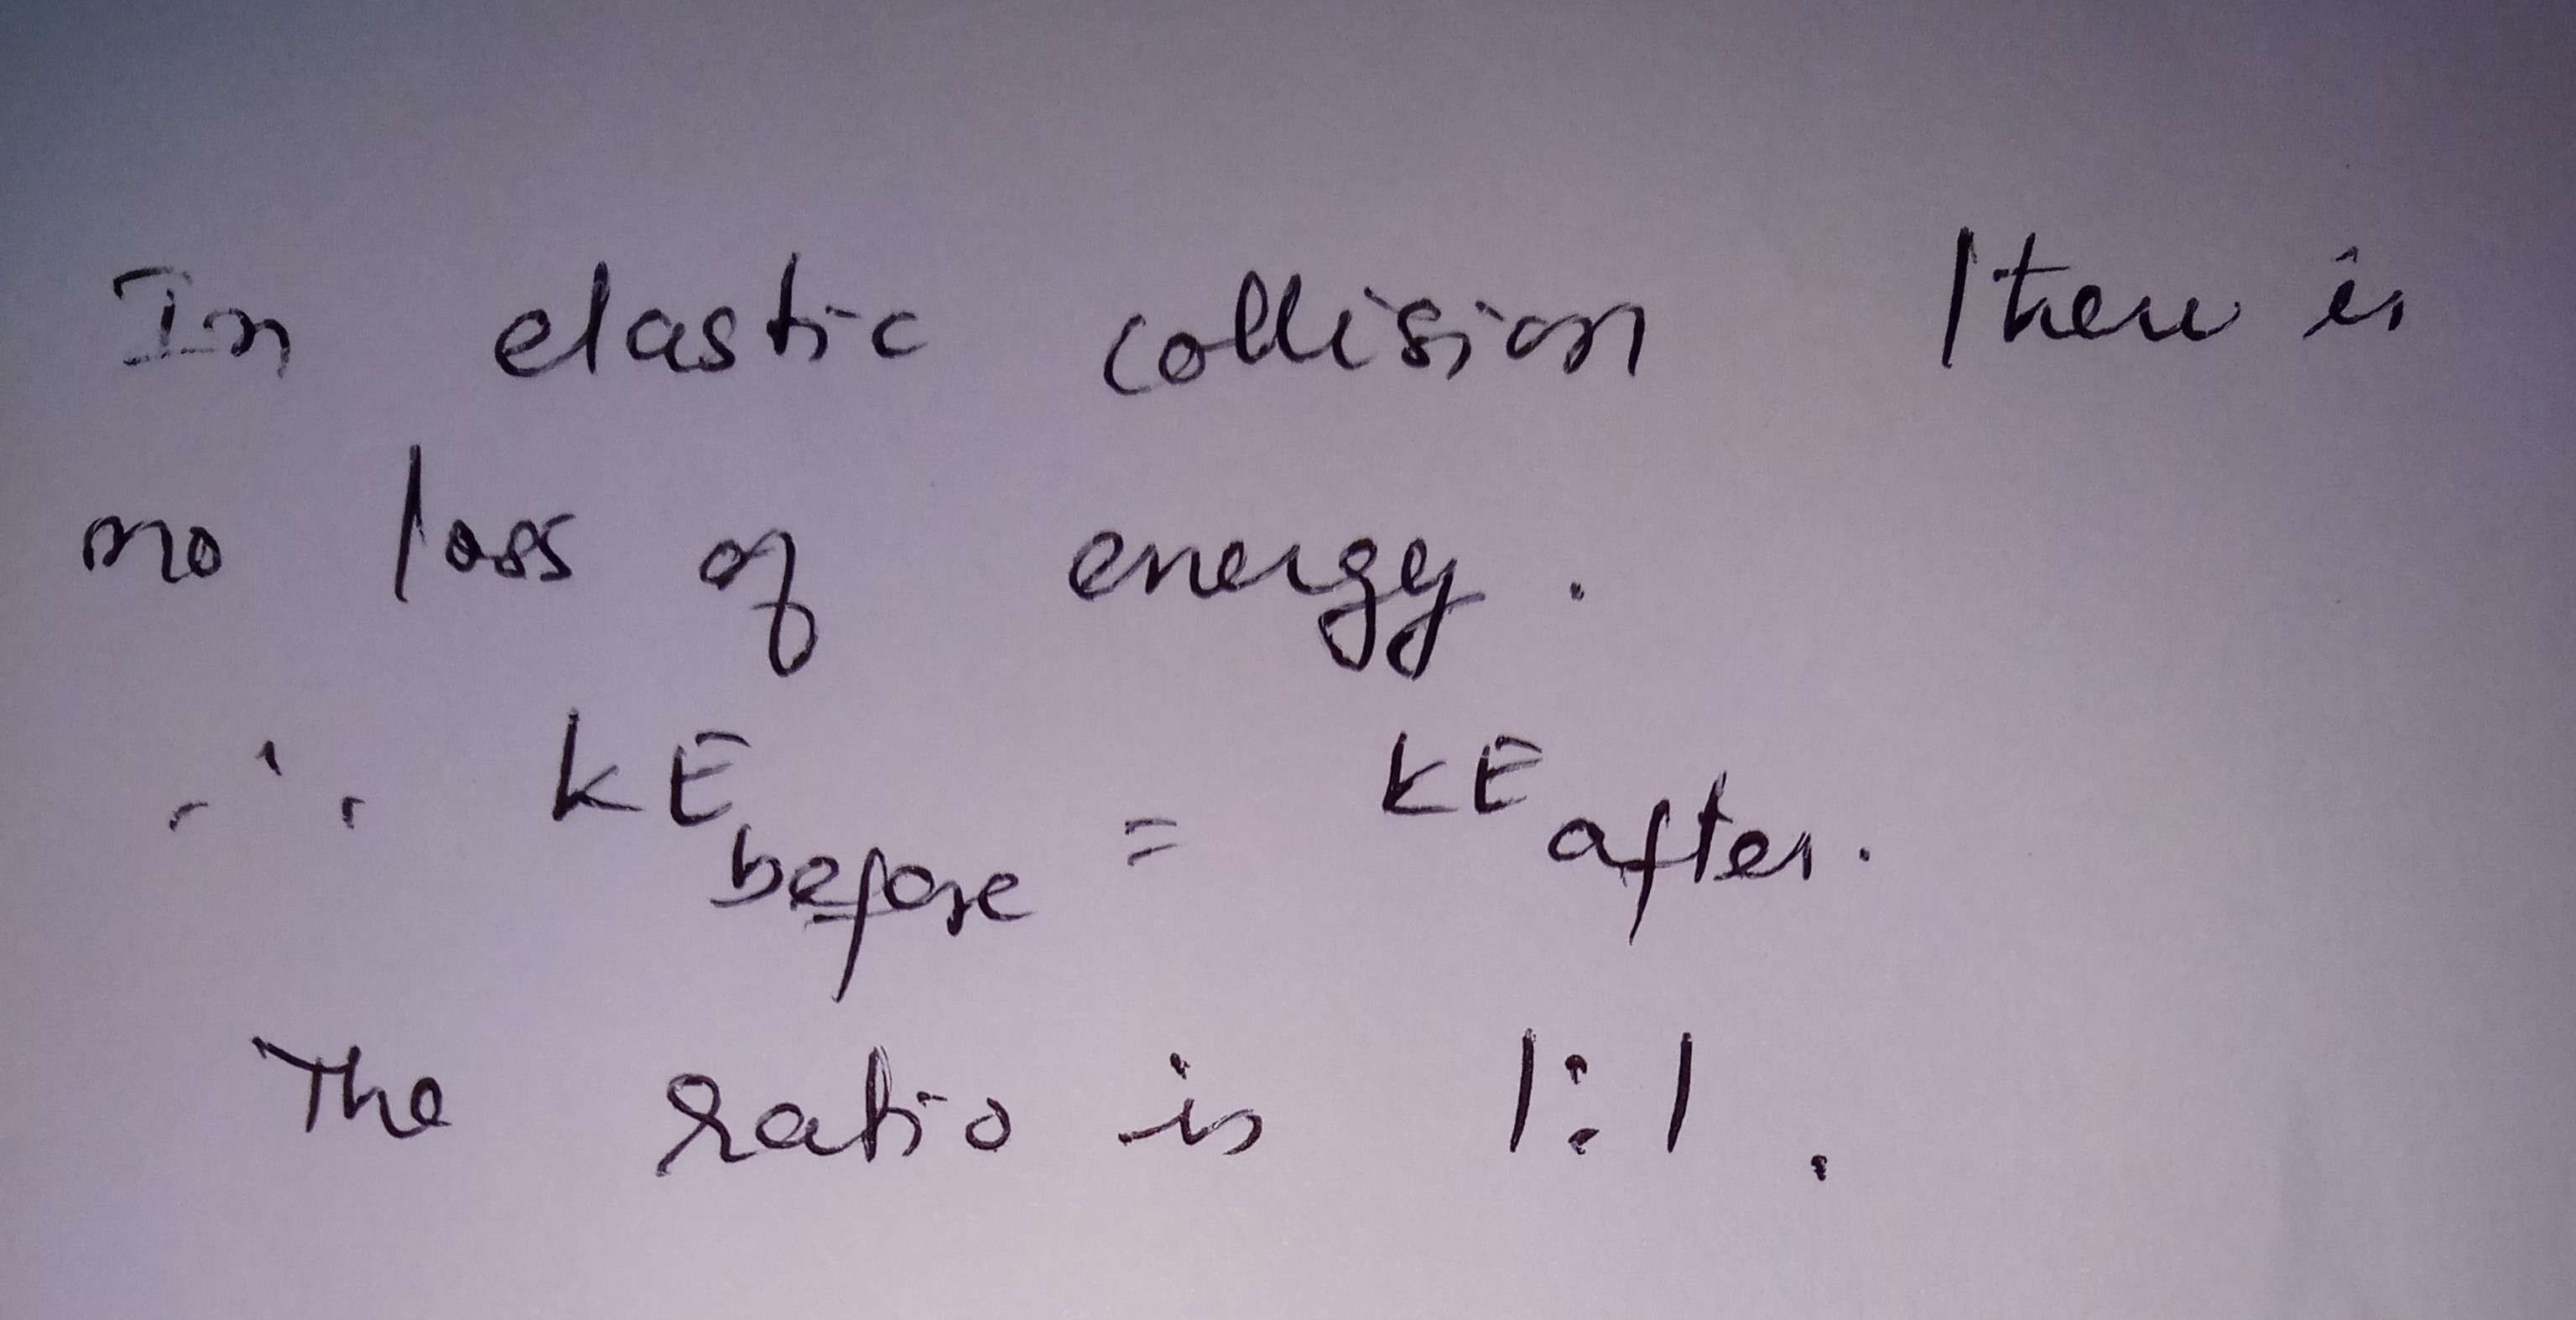 The ratio of kinetic energy before and after elastic